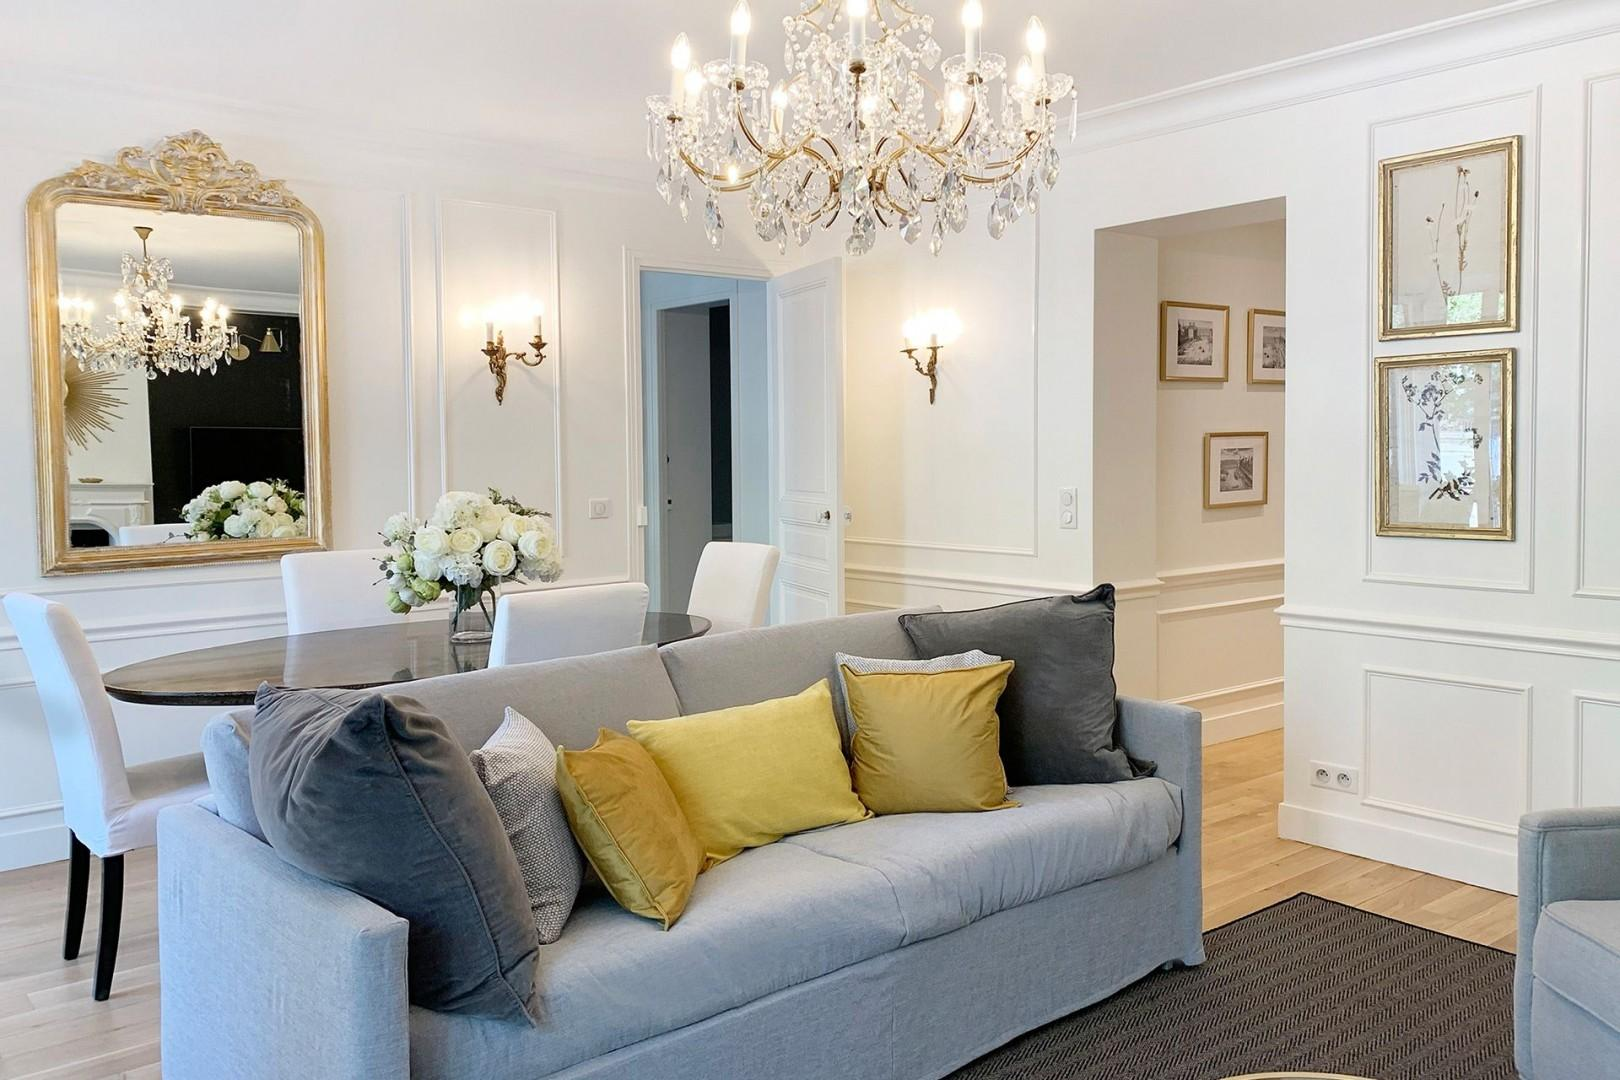 The sofa converts into two comfortable beds providing extra sleeping space for additional guests.